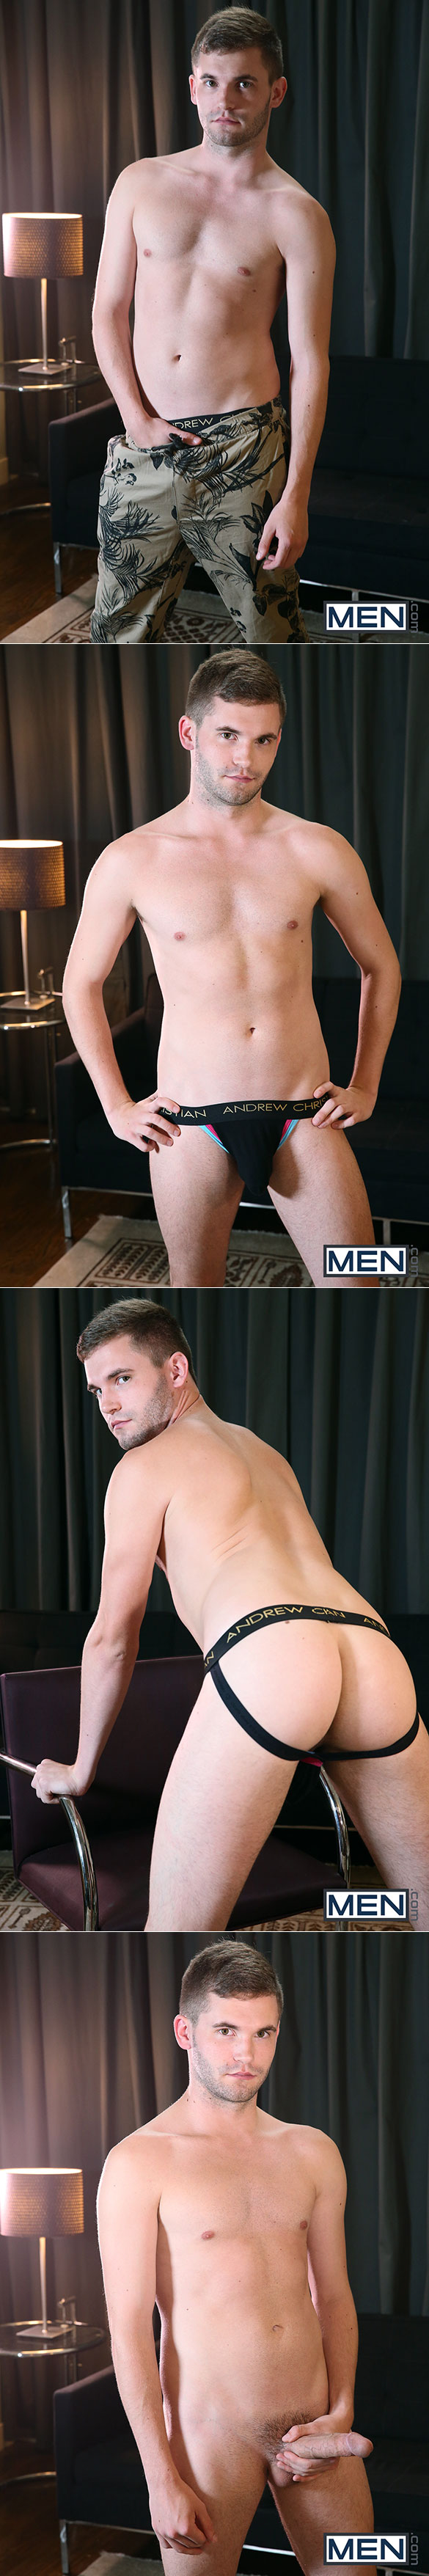 "Men.com: Kaden Alexander fucks Jack Radley in ""Stepbrothers, Part 3"""